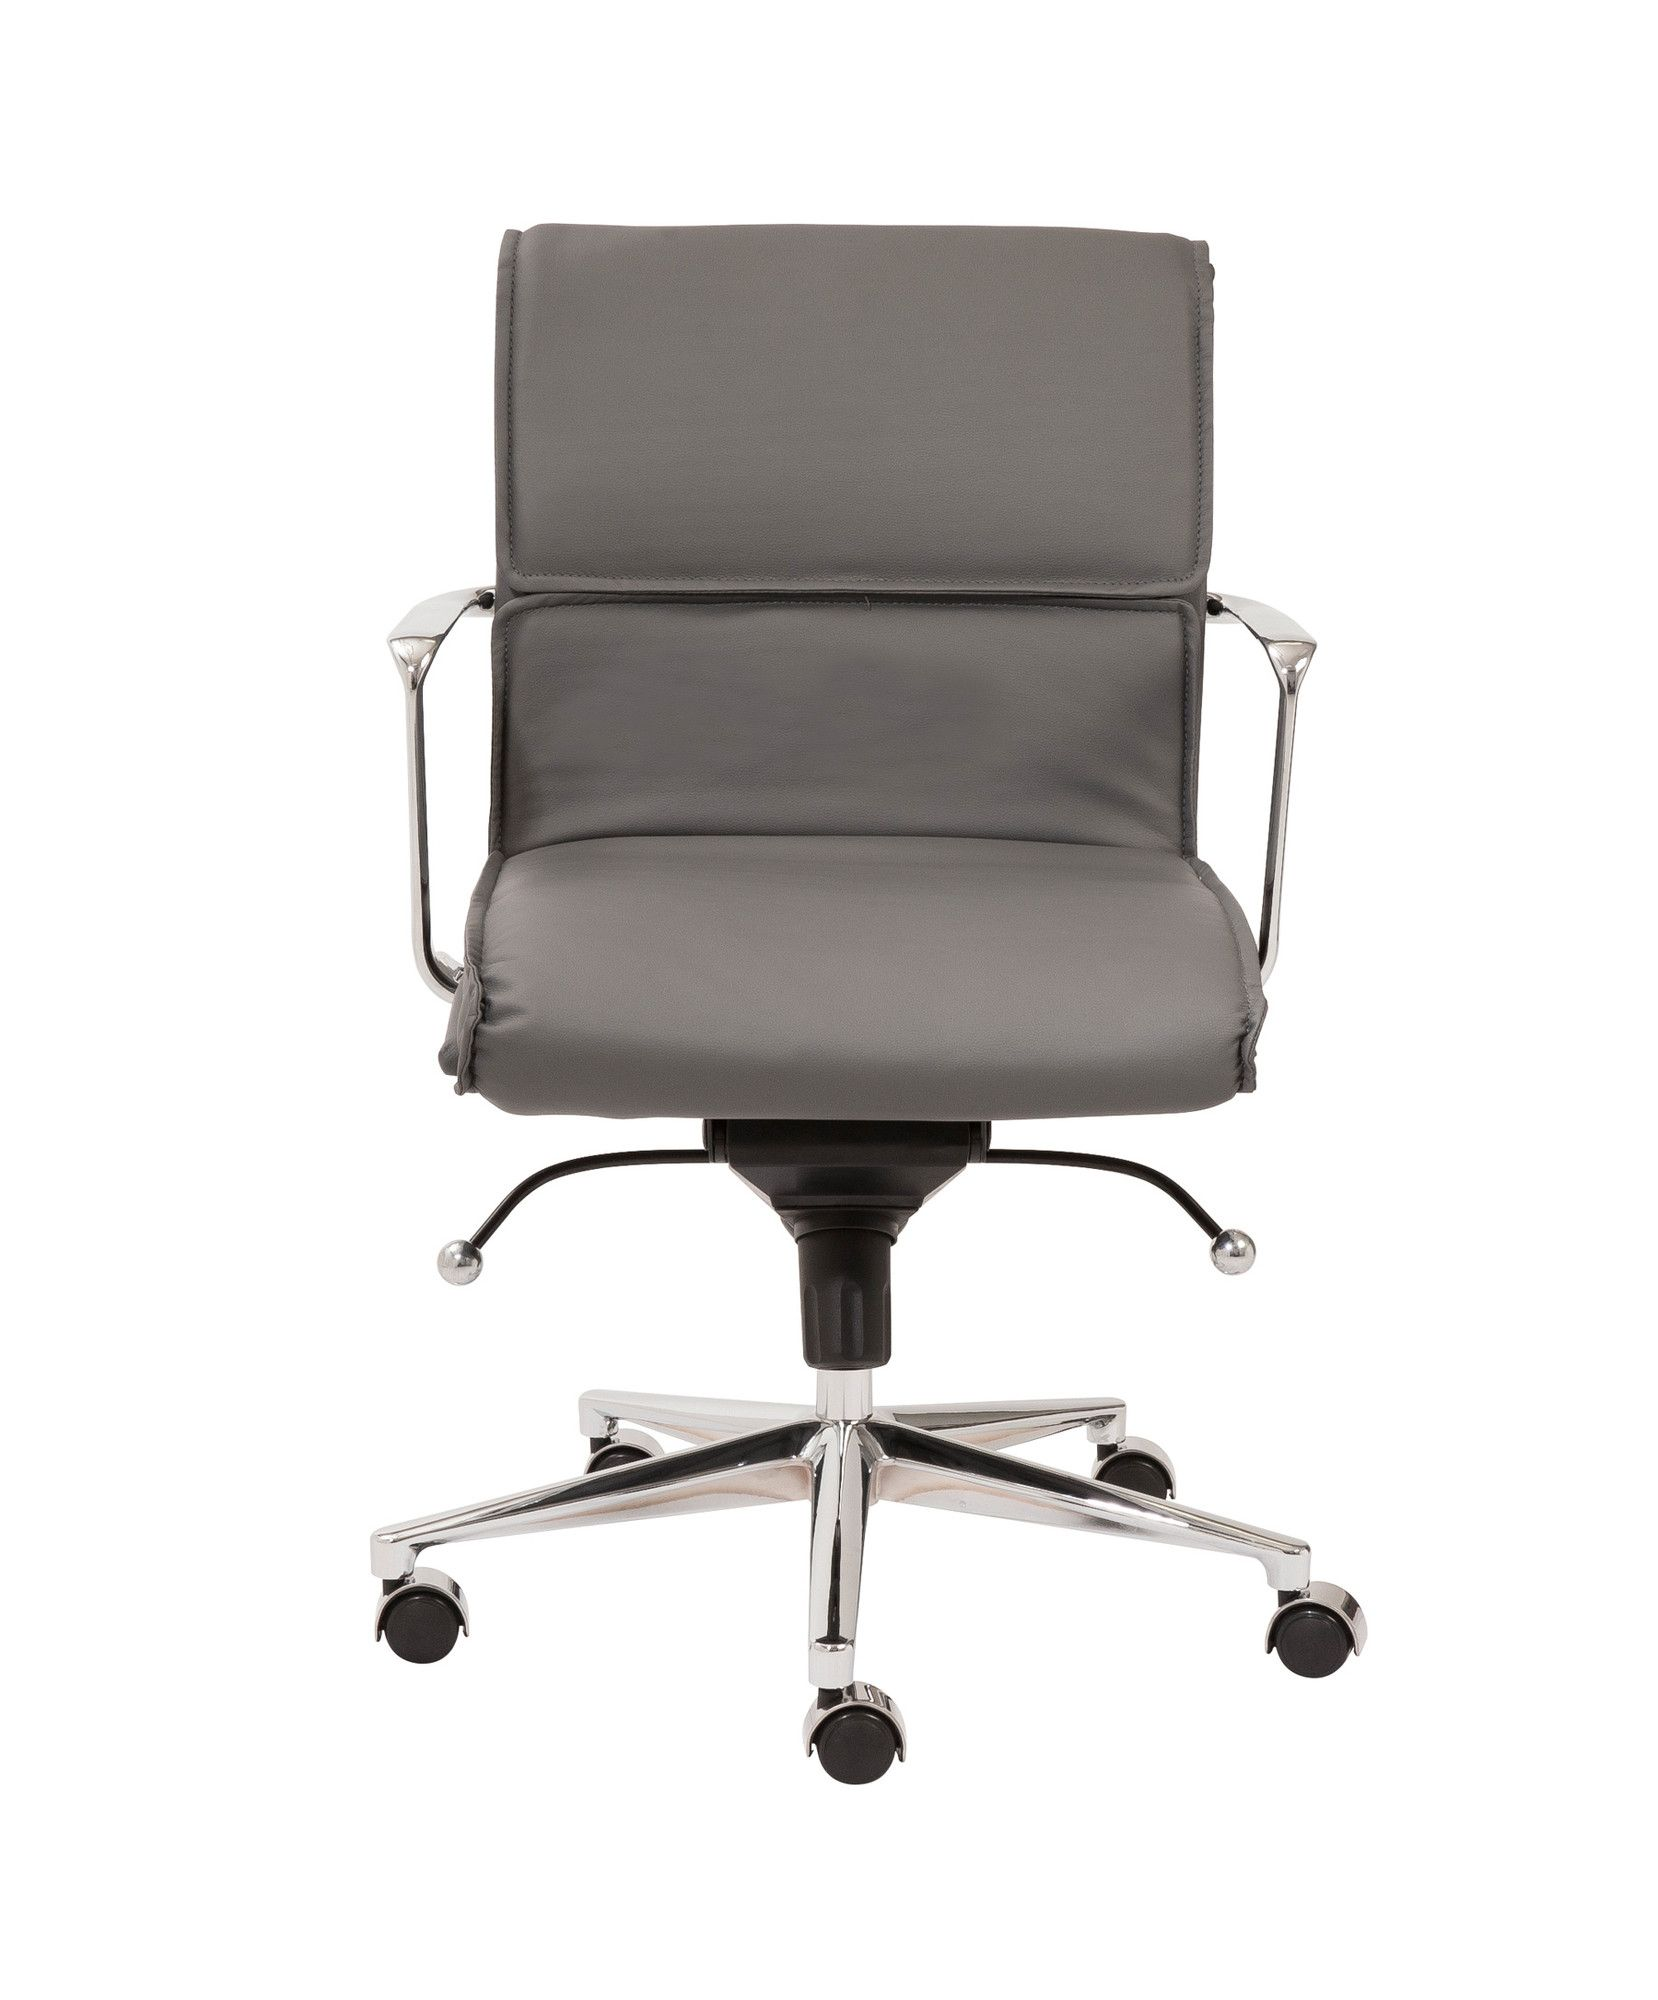 Astonishing Eurostyle Leif Low Back Leatherette Office Chair With Arms Gmtry Best Dining Table And Chair Ideas Images Gmtryco